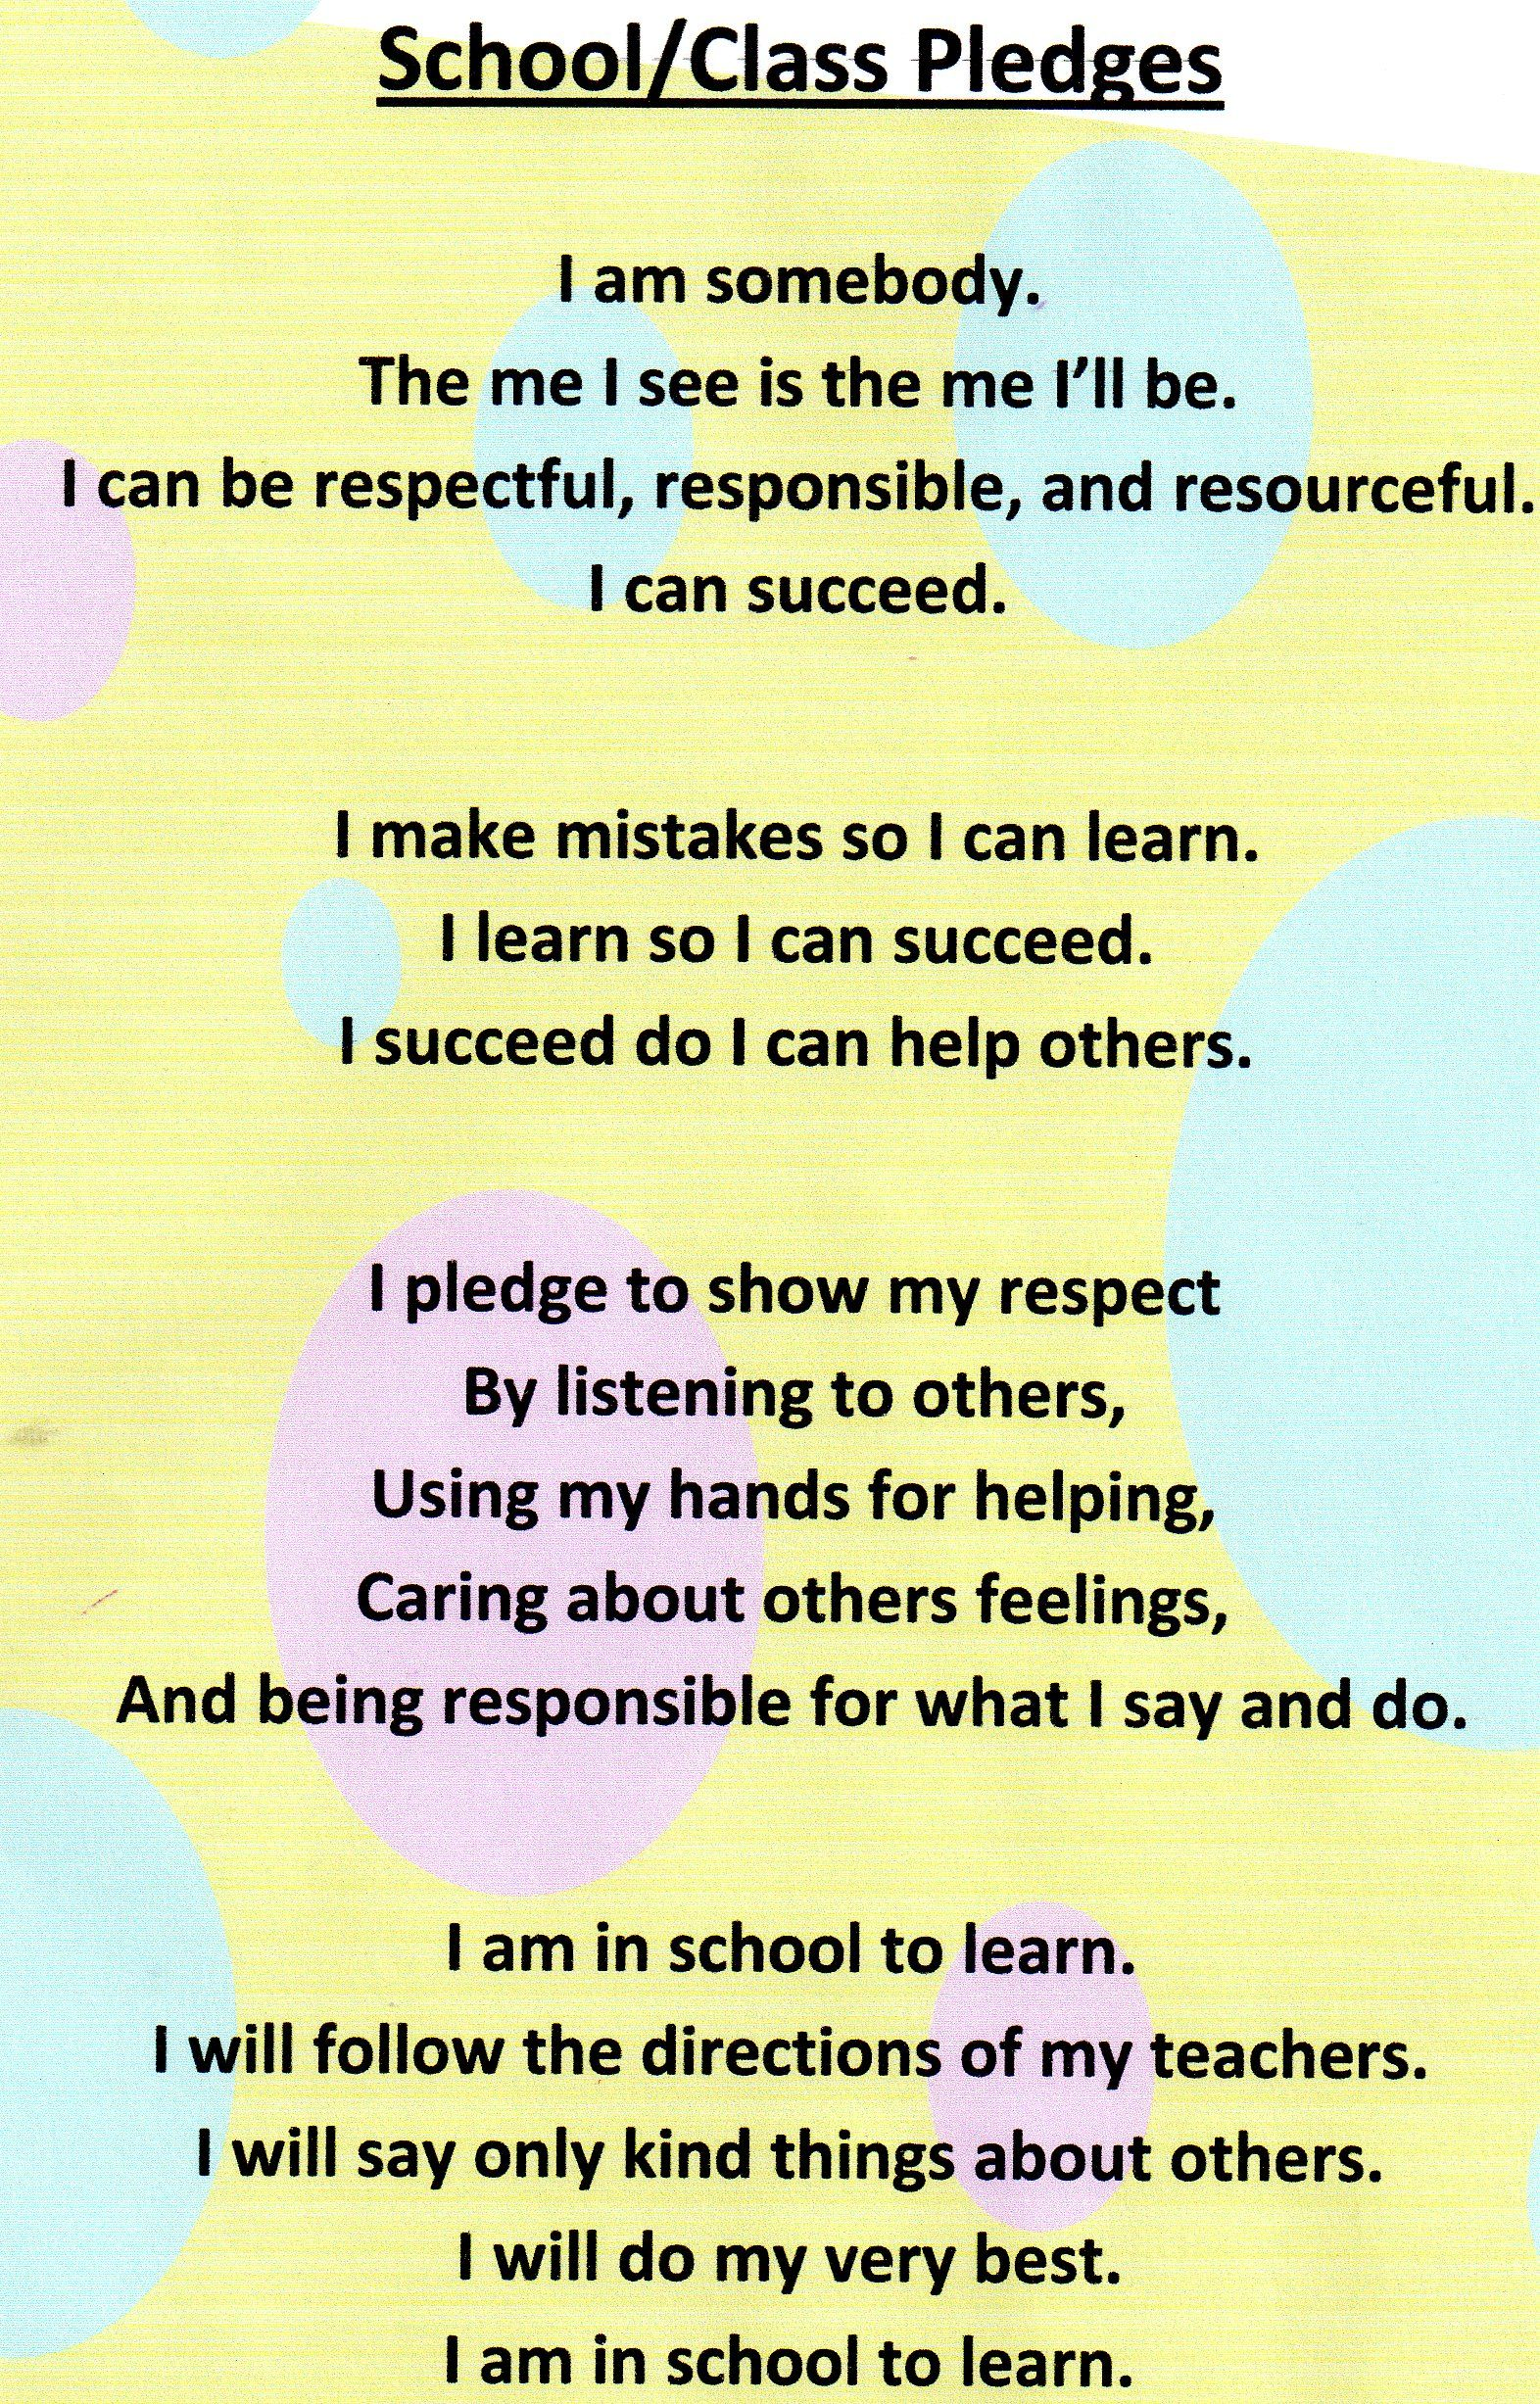 School/Class Pledges for K-2 with some tweaks | Leader In ...